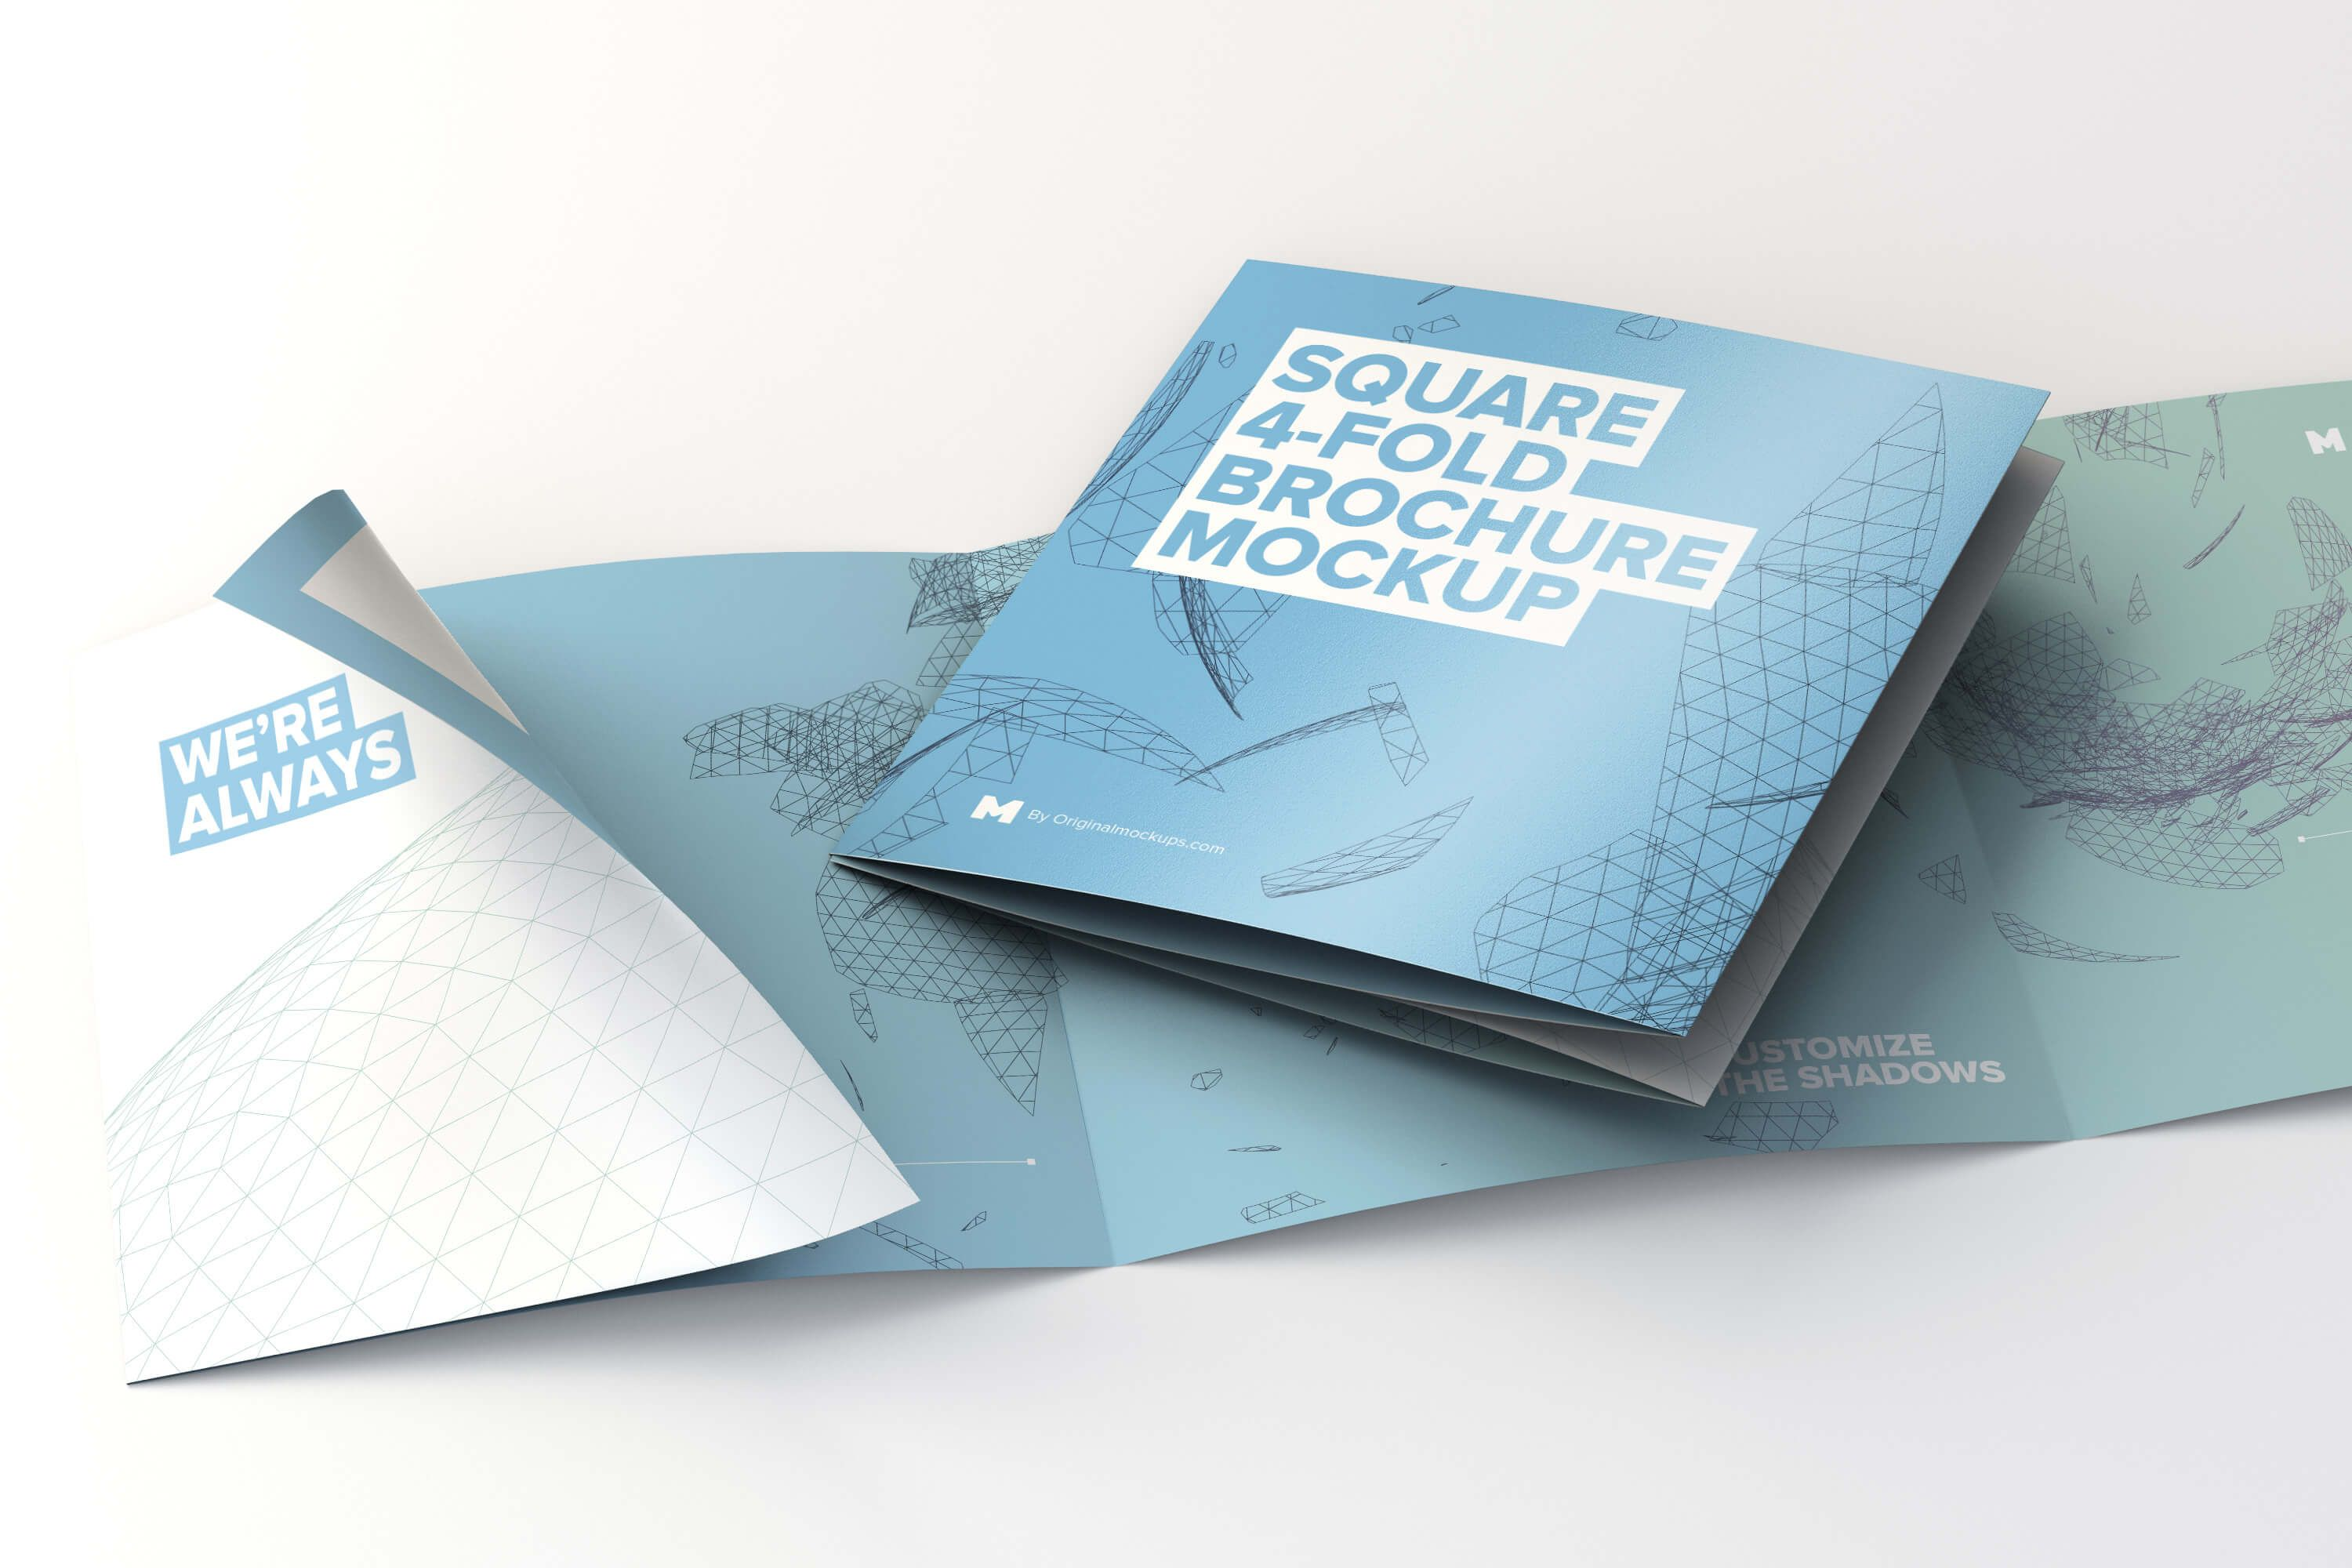 folded and unfolded square 4 fold brochure mockup by original